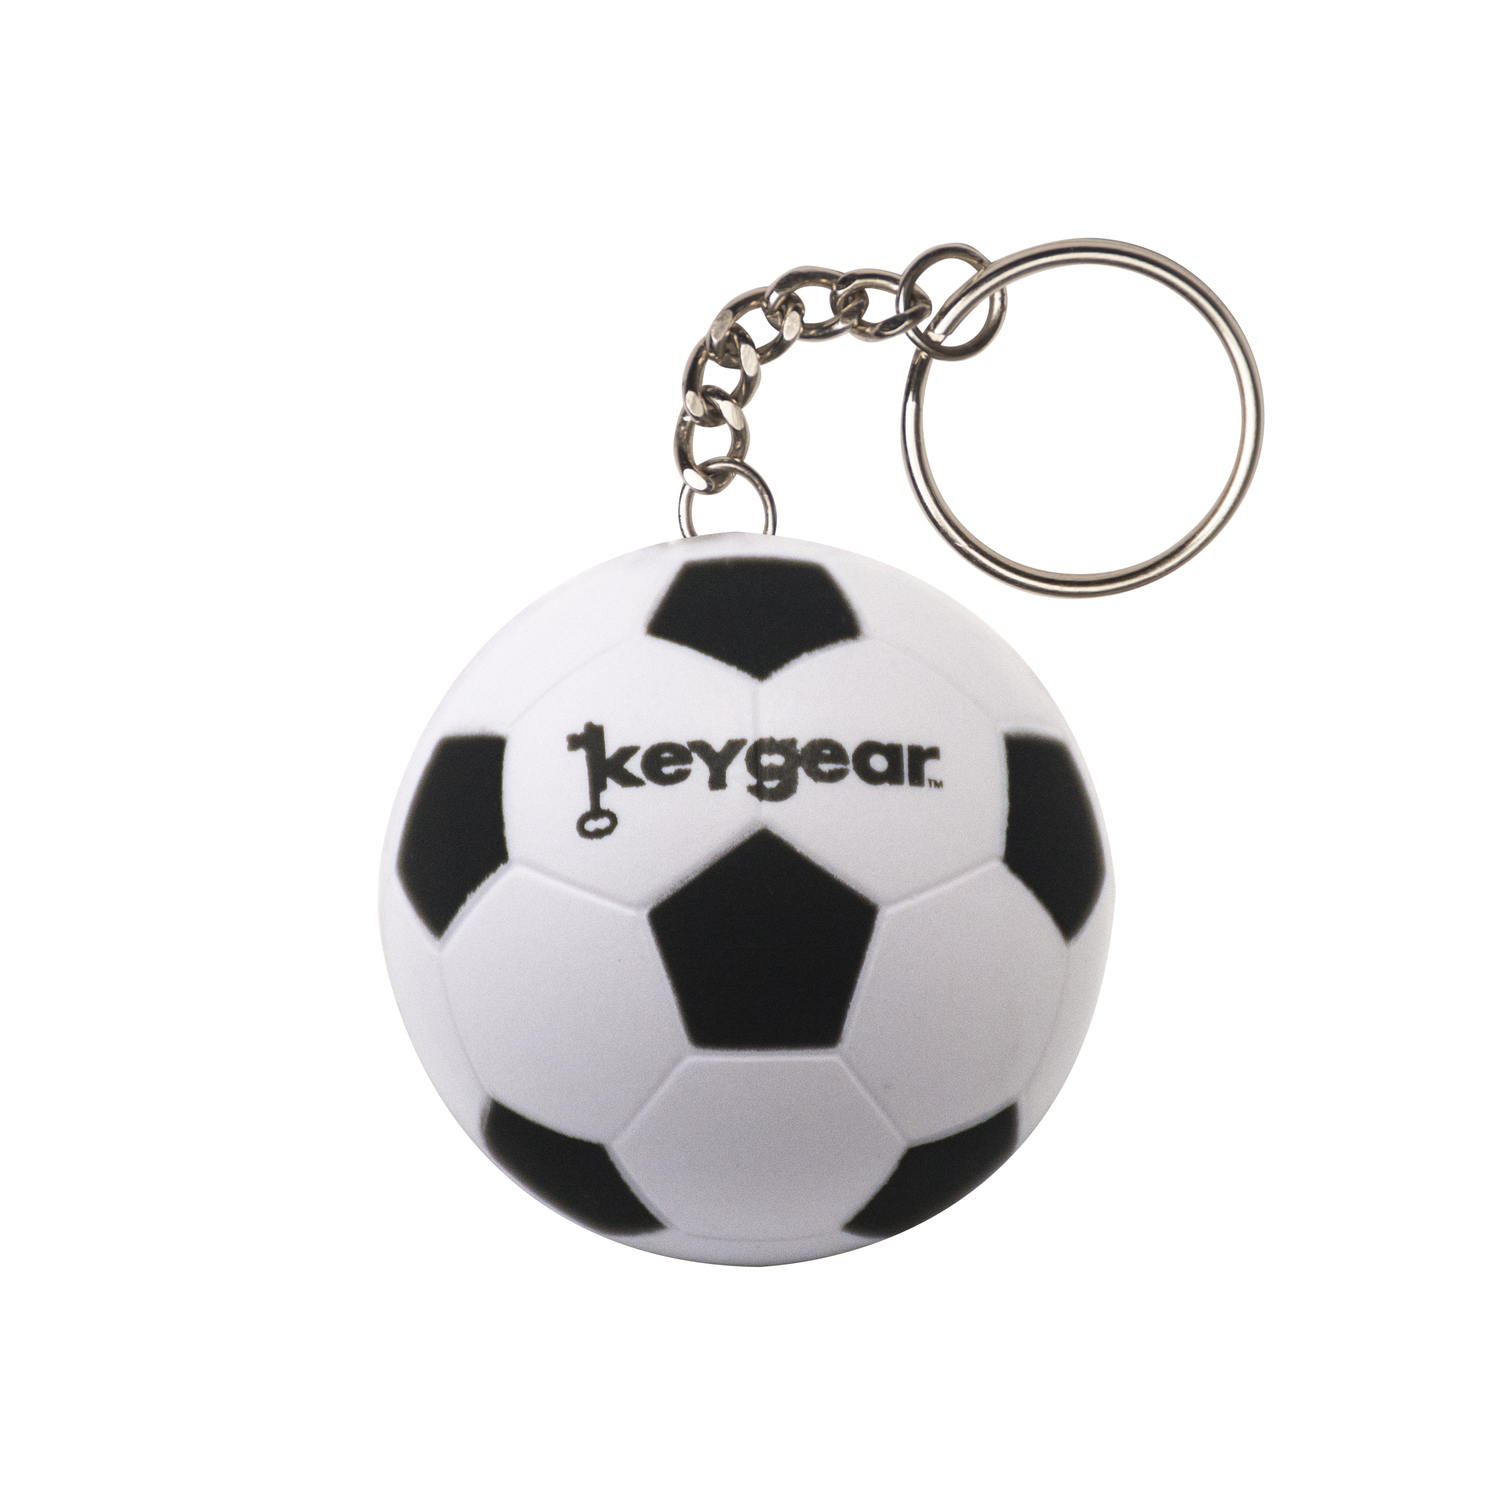 KeyGear  in in. Dia. Rubber  White  Coiled  Key Chain